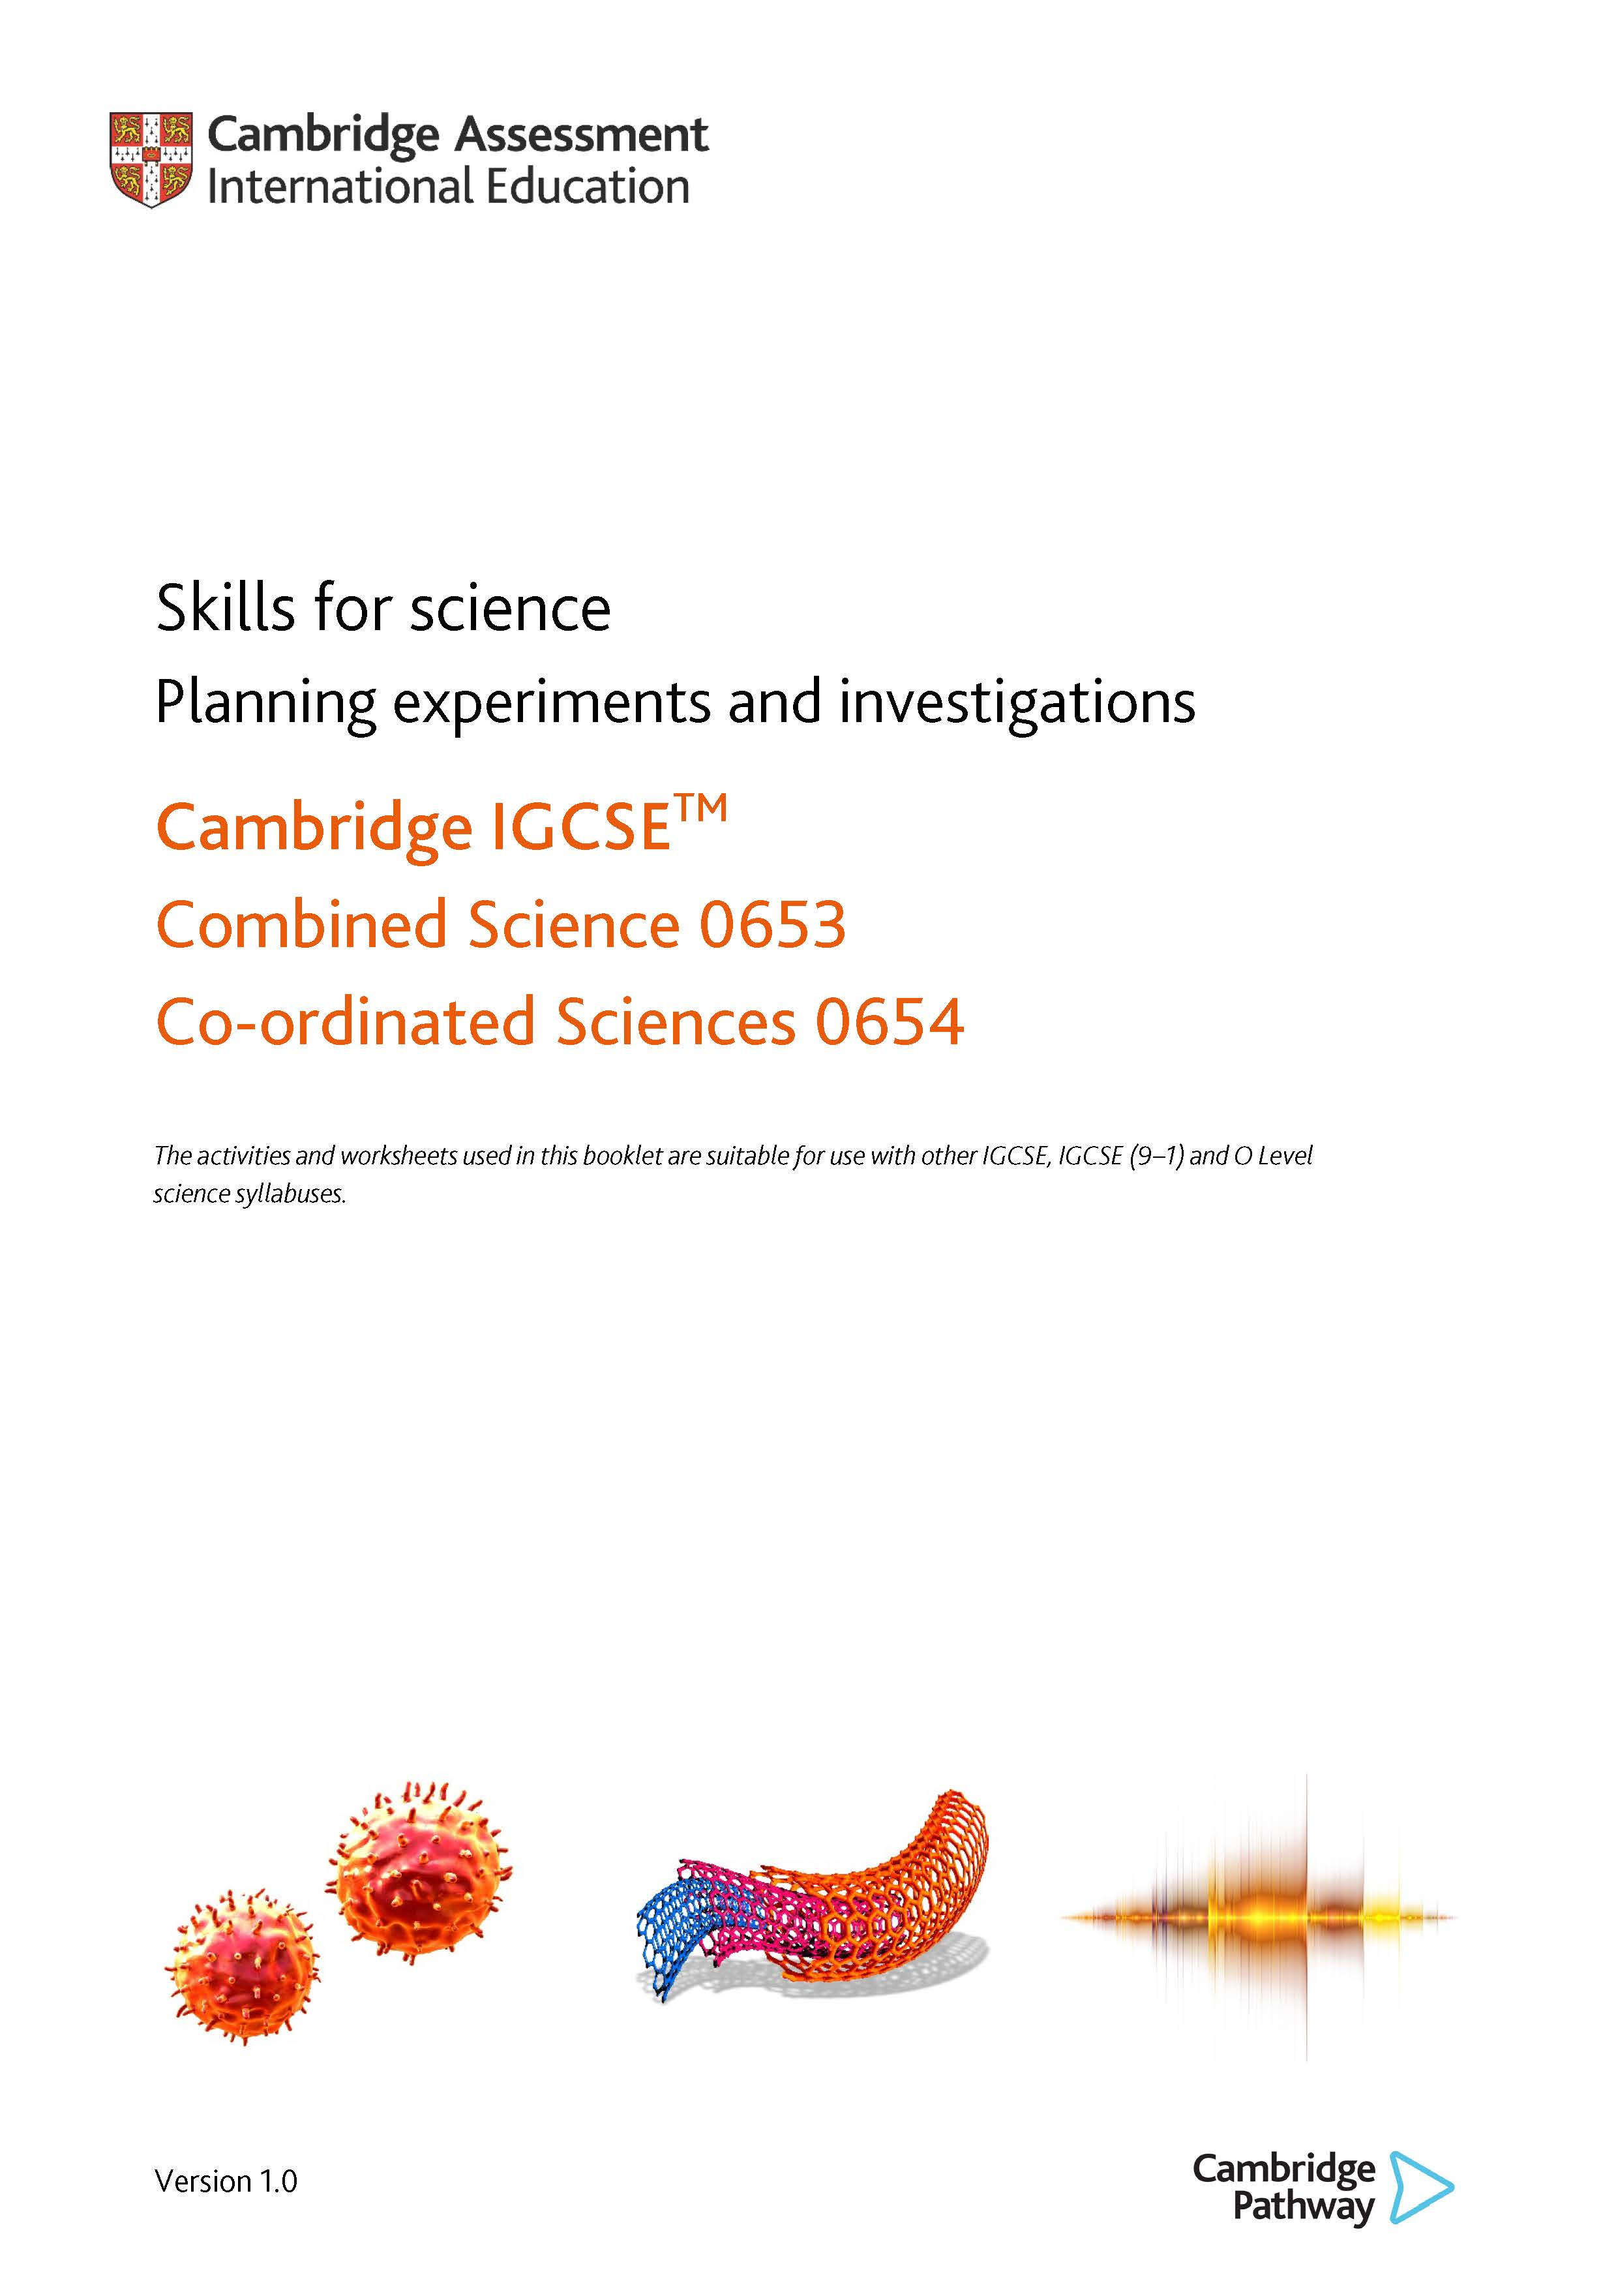 Skills for science - Planning